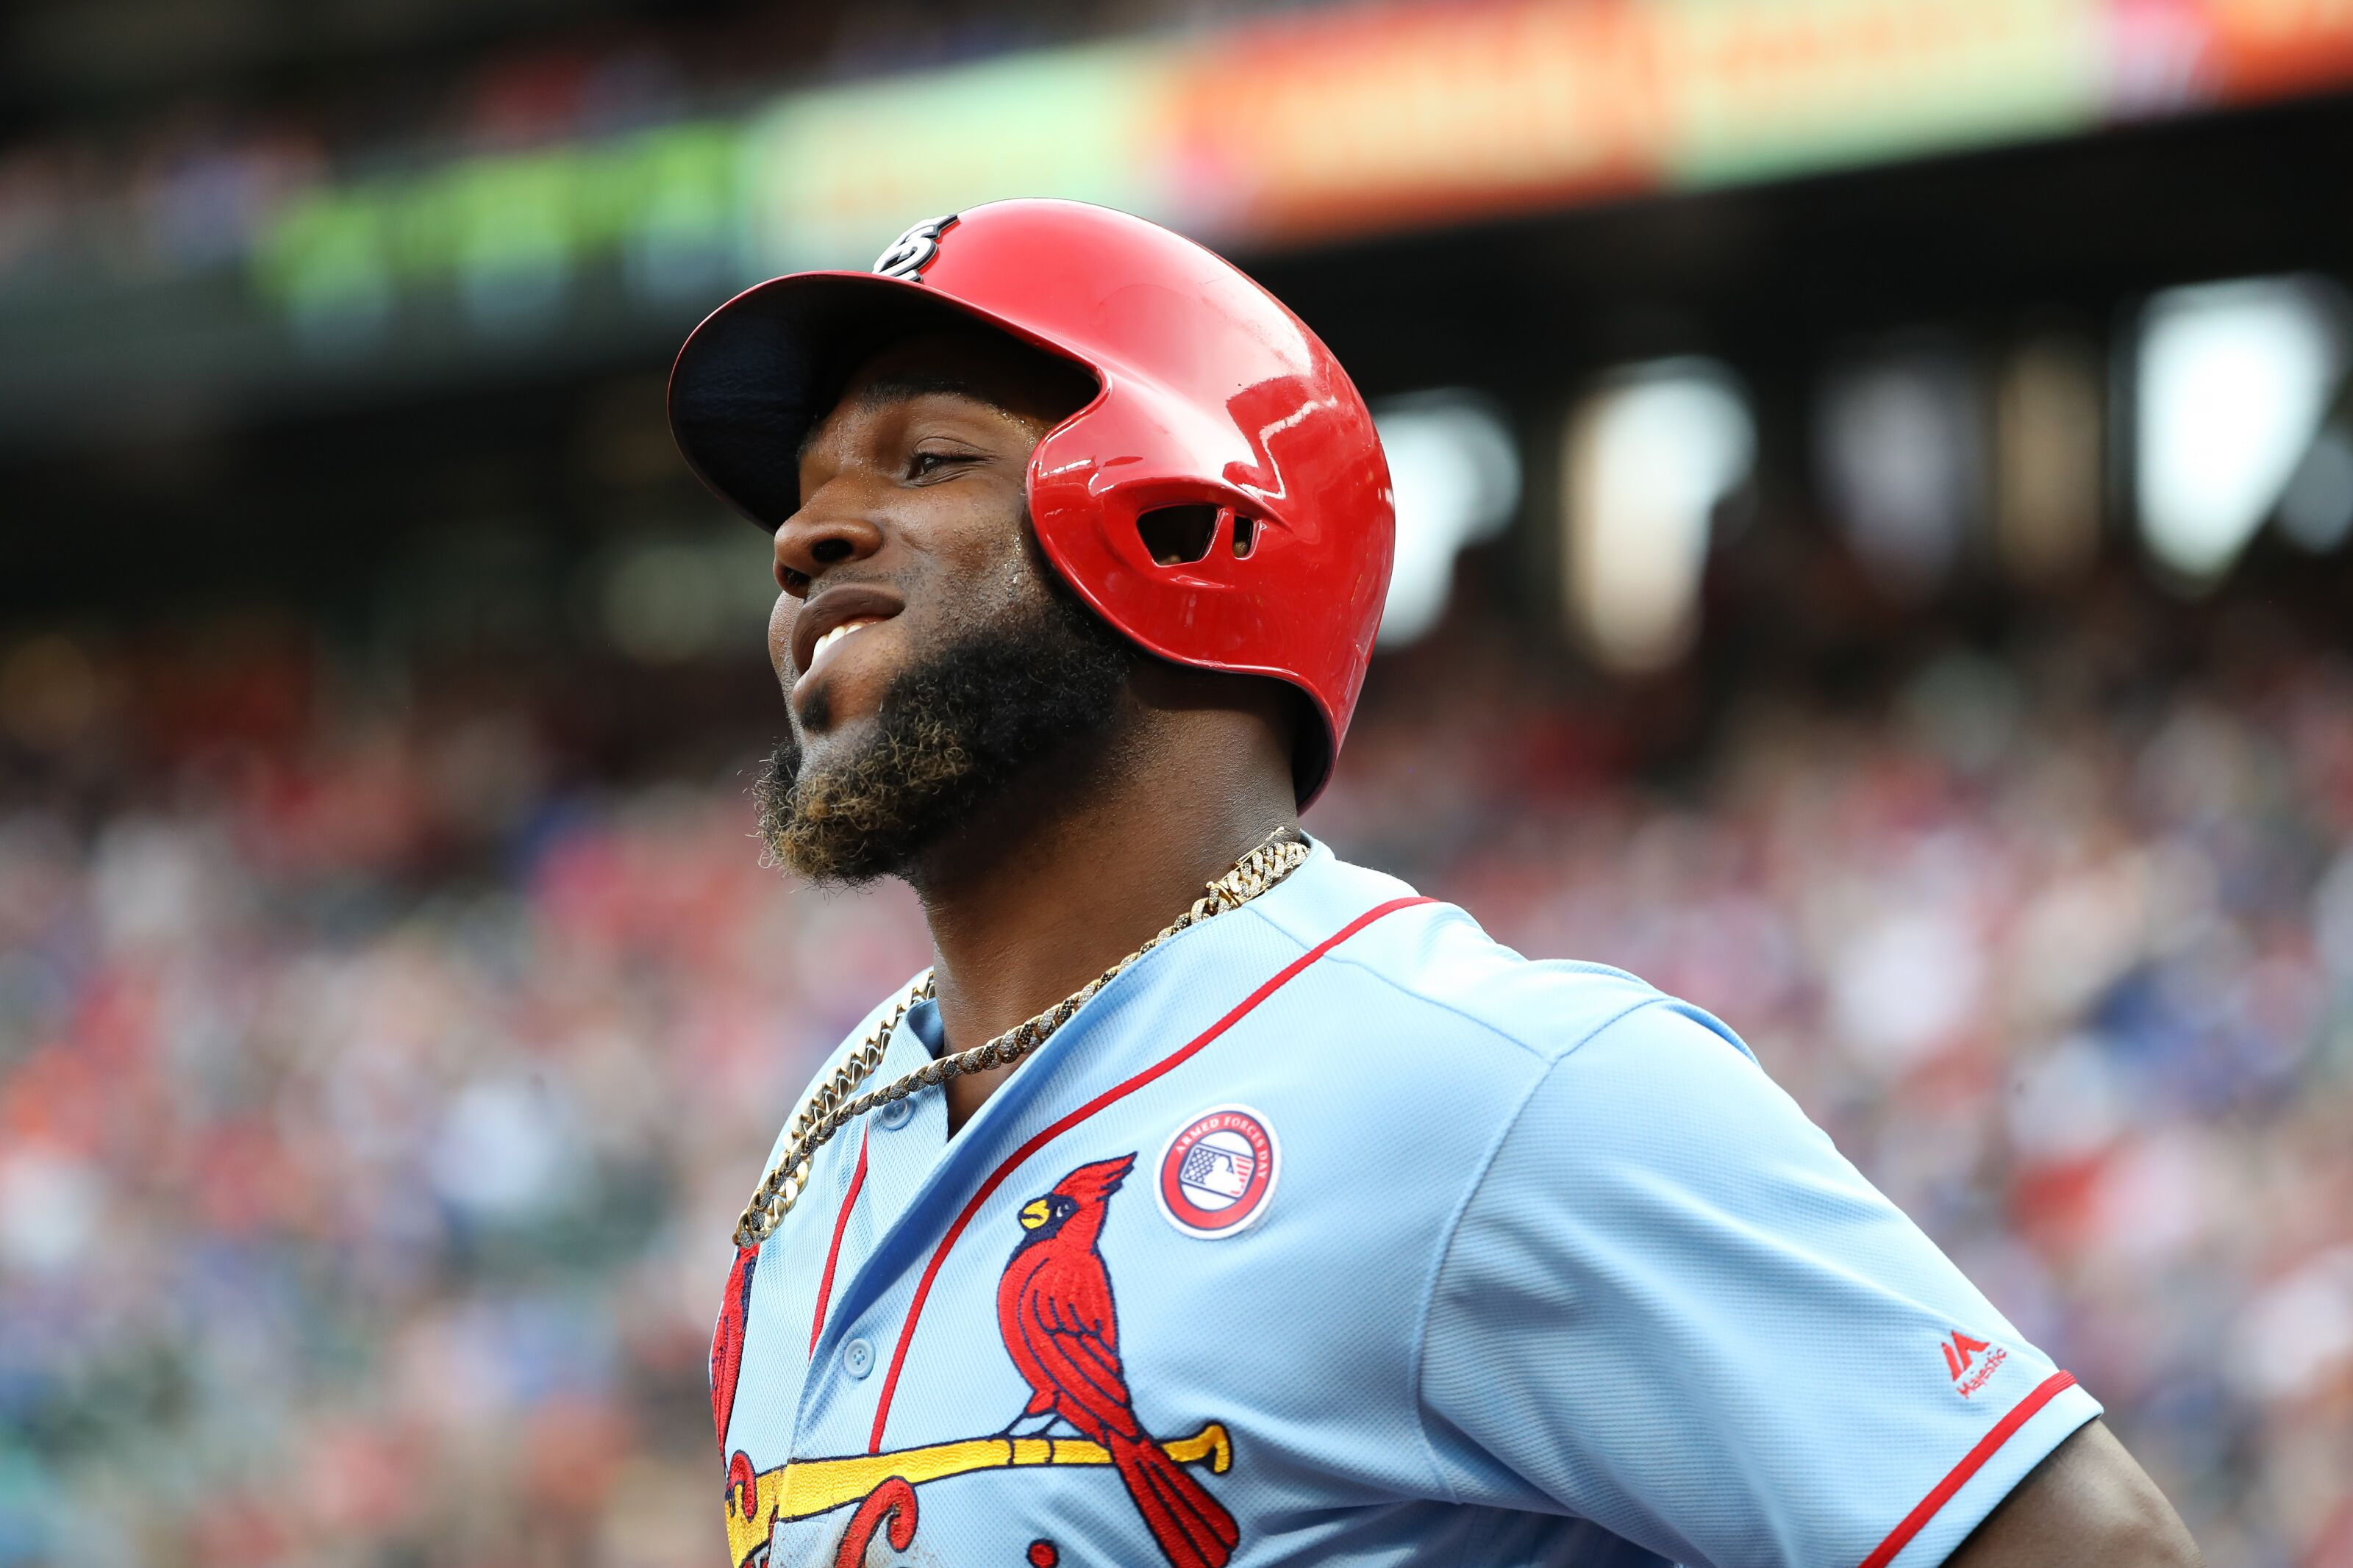 St. Louis Cardinals: If not Ozuna, then who in 2020?